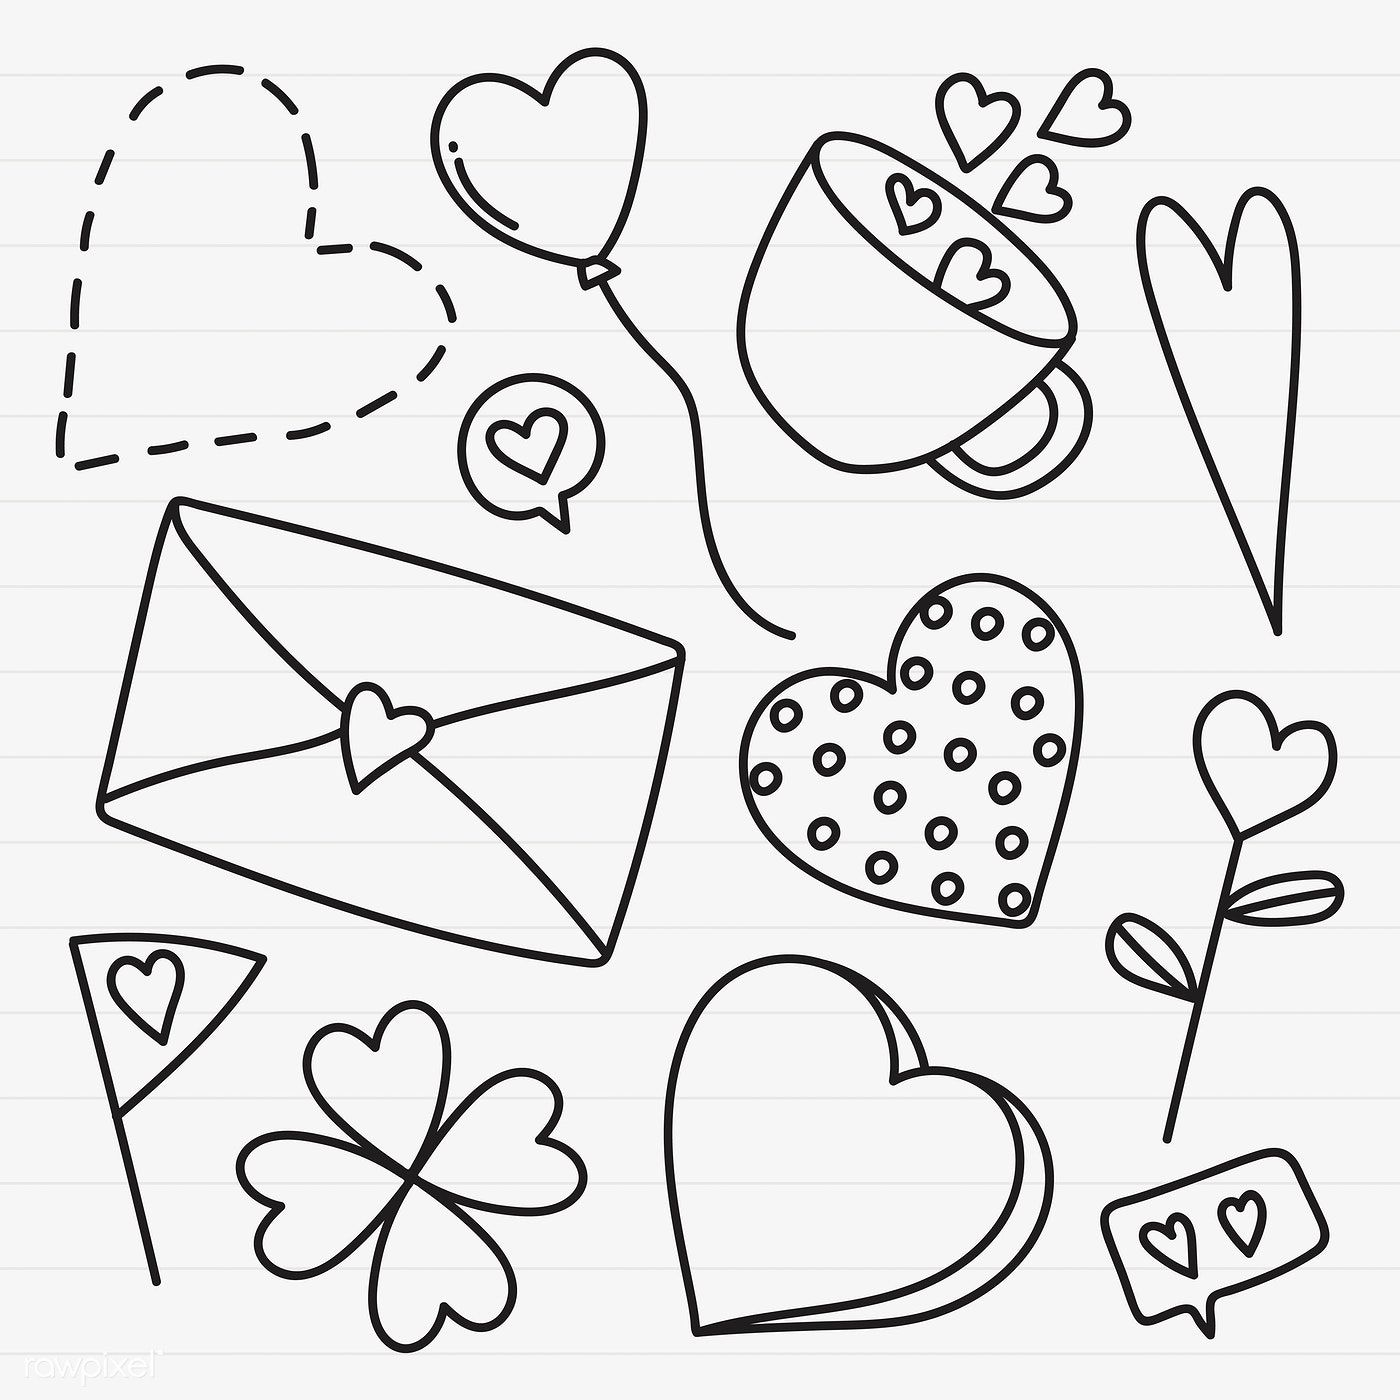 Download premium vector of Hand drawn love and valentine's